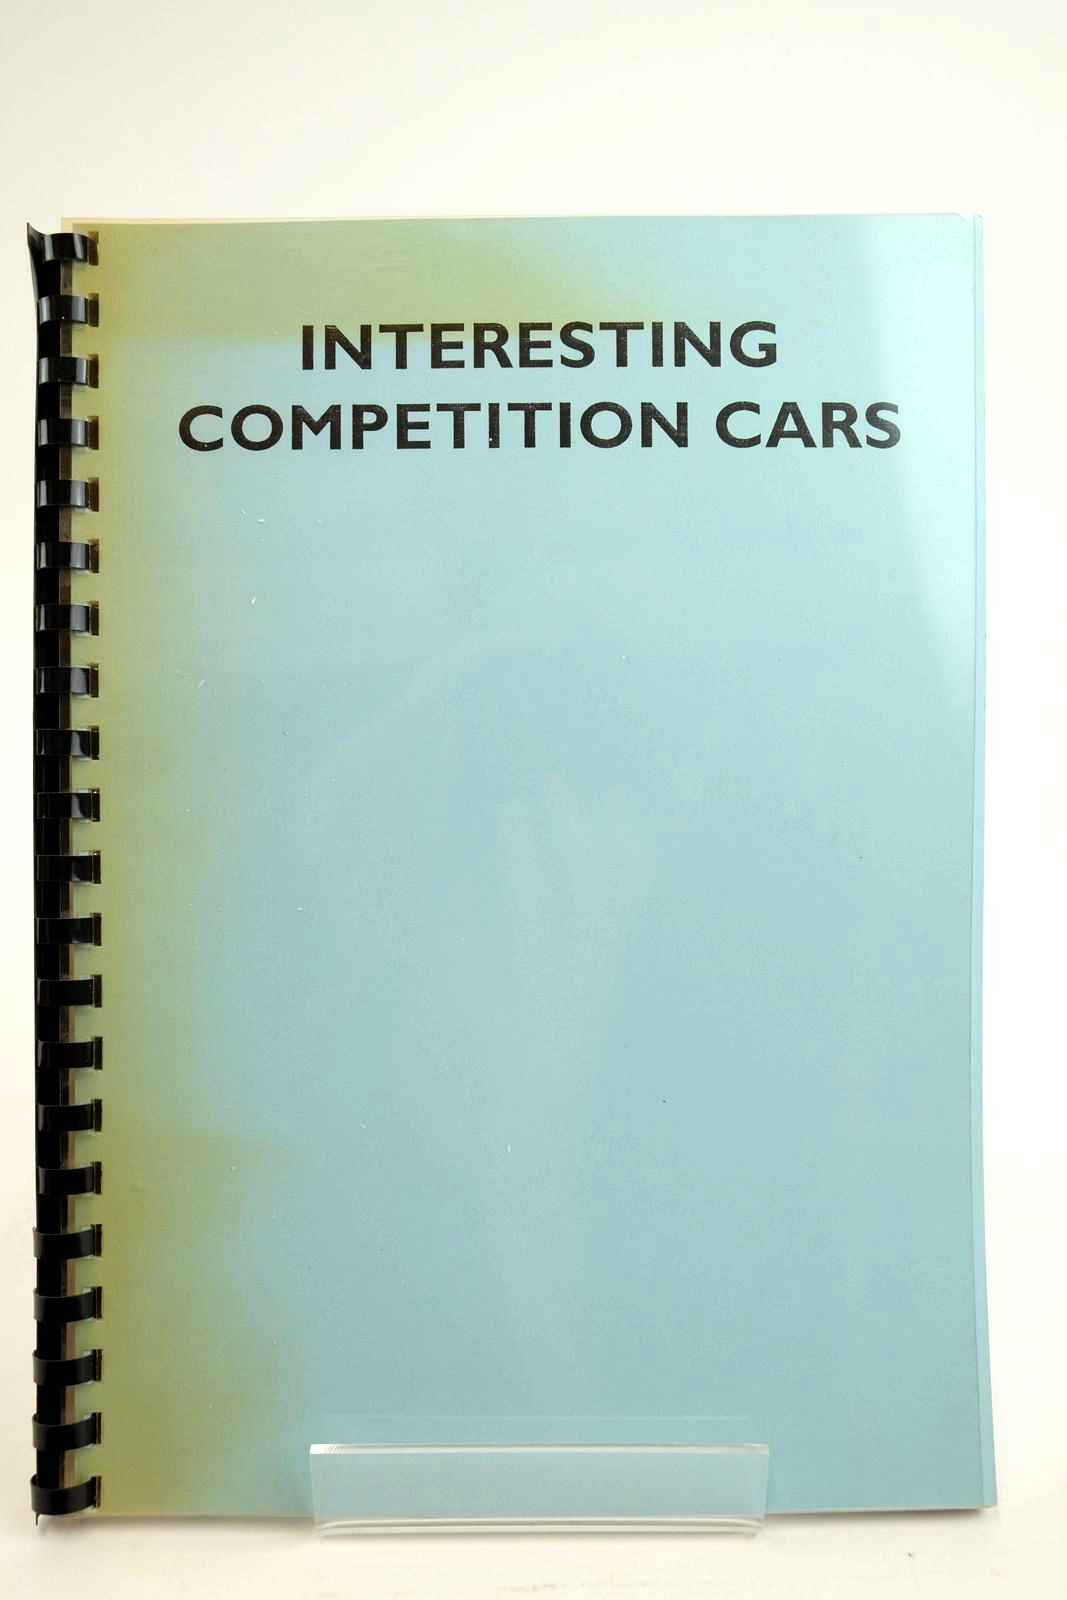 Photo of INTERESTING COMPETITION CARS published by Unique Motor Books (STOCK CODE: 2135204)  for sale by Stella & Rose's Books